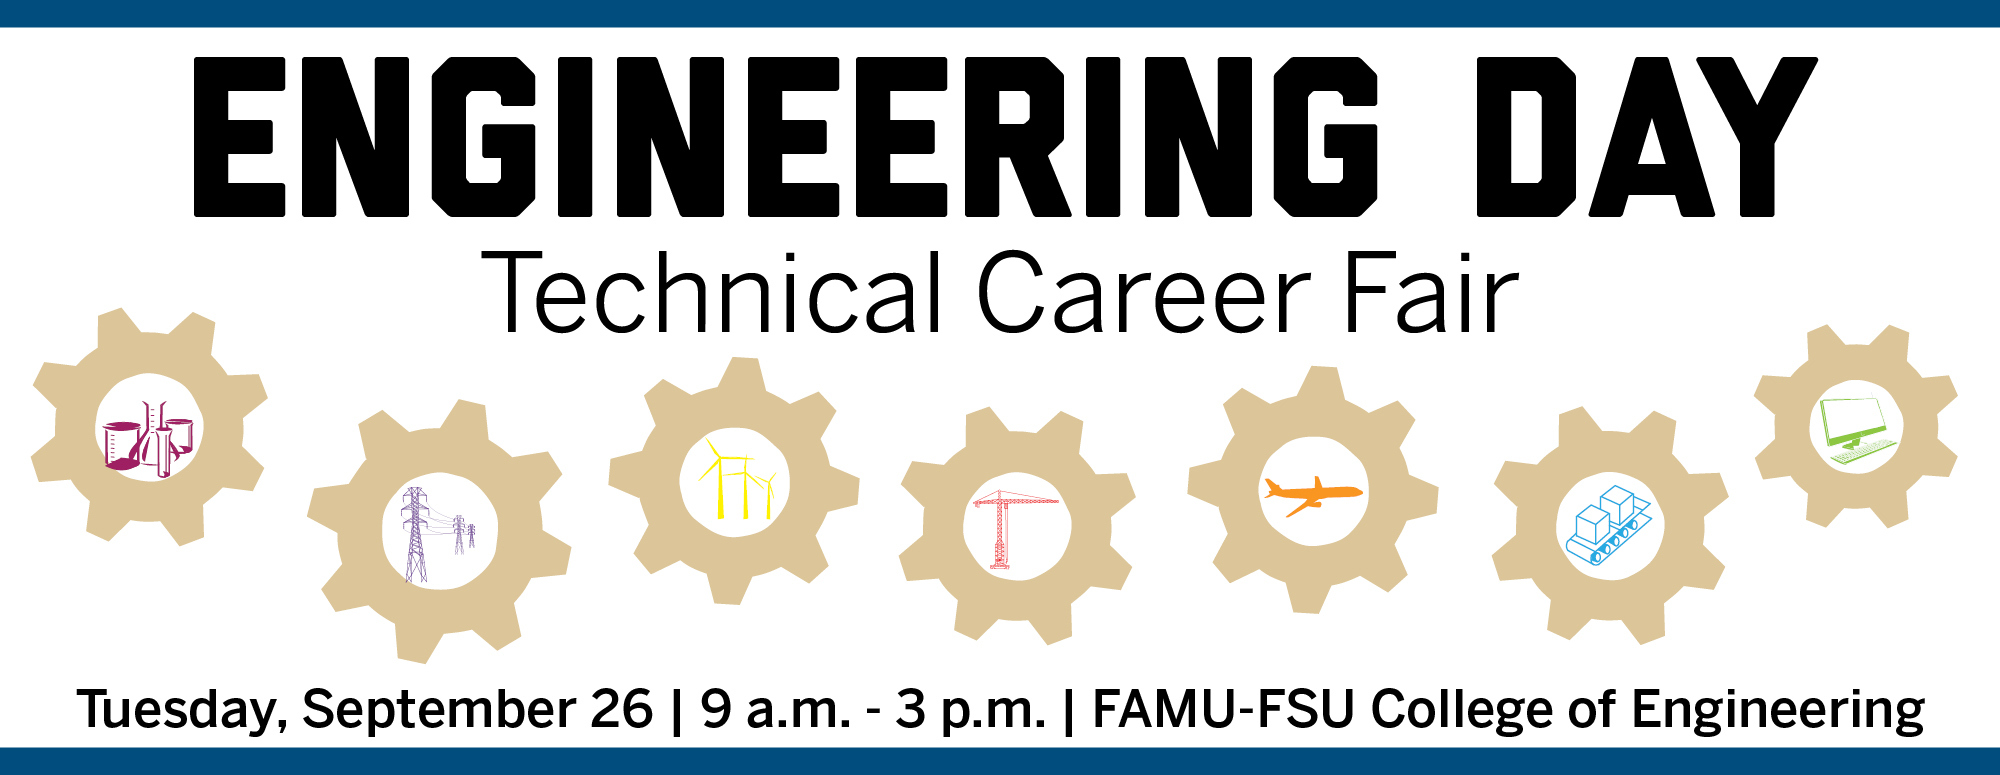 Fall 2017 Engineering Day